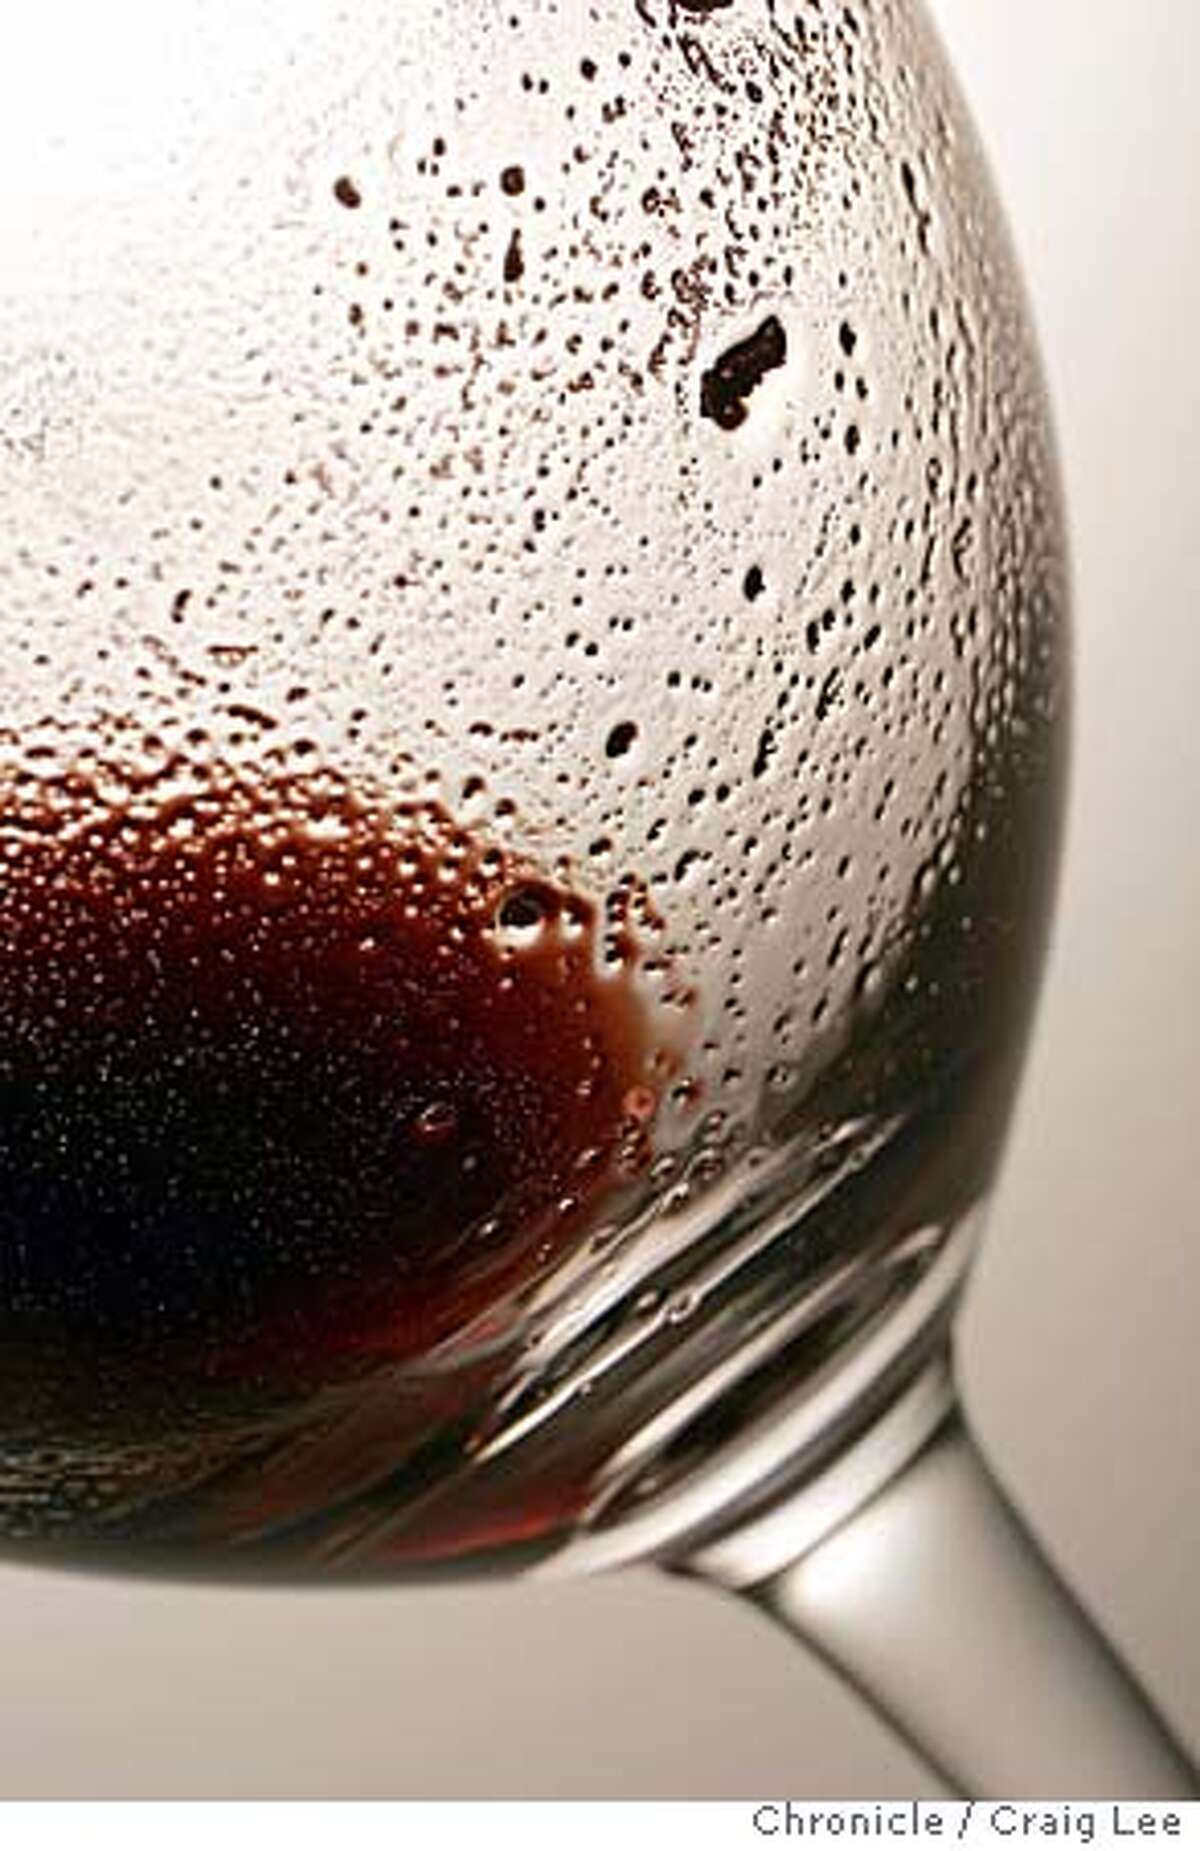 Photo of wine sediment alongside inside a wine glass. Event on 8/31/04 in San Francisco. Craig Lee / The Chronicle